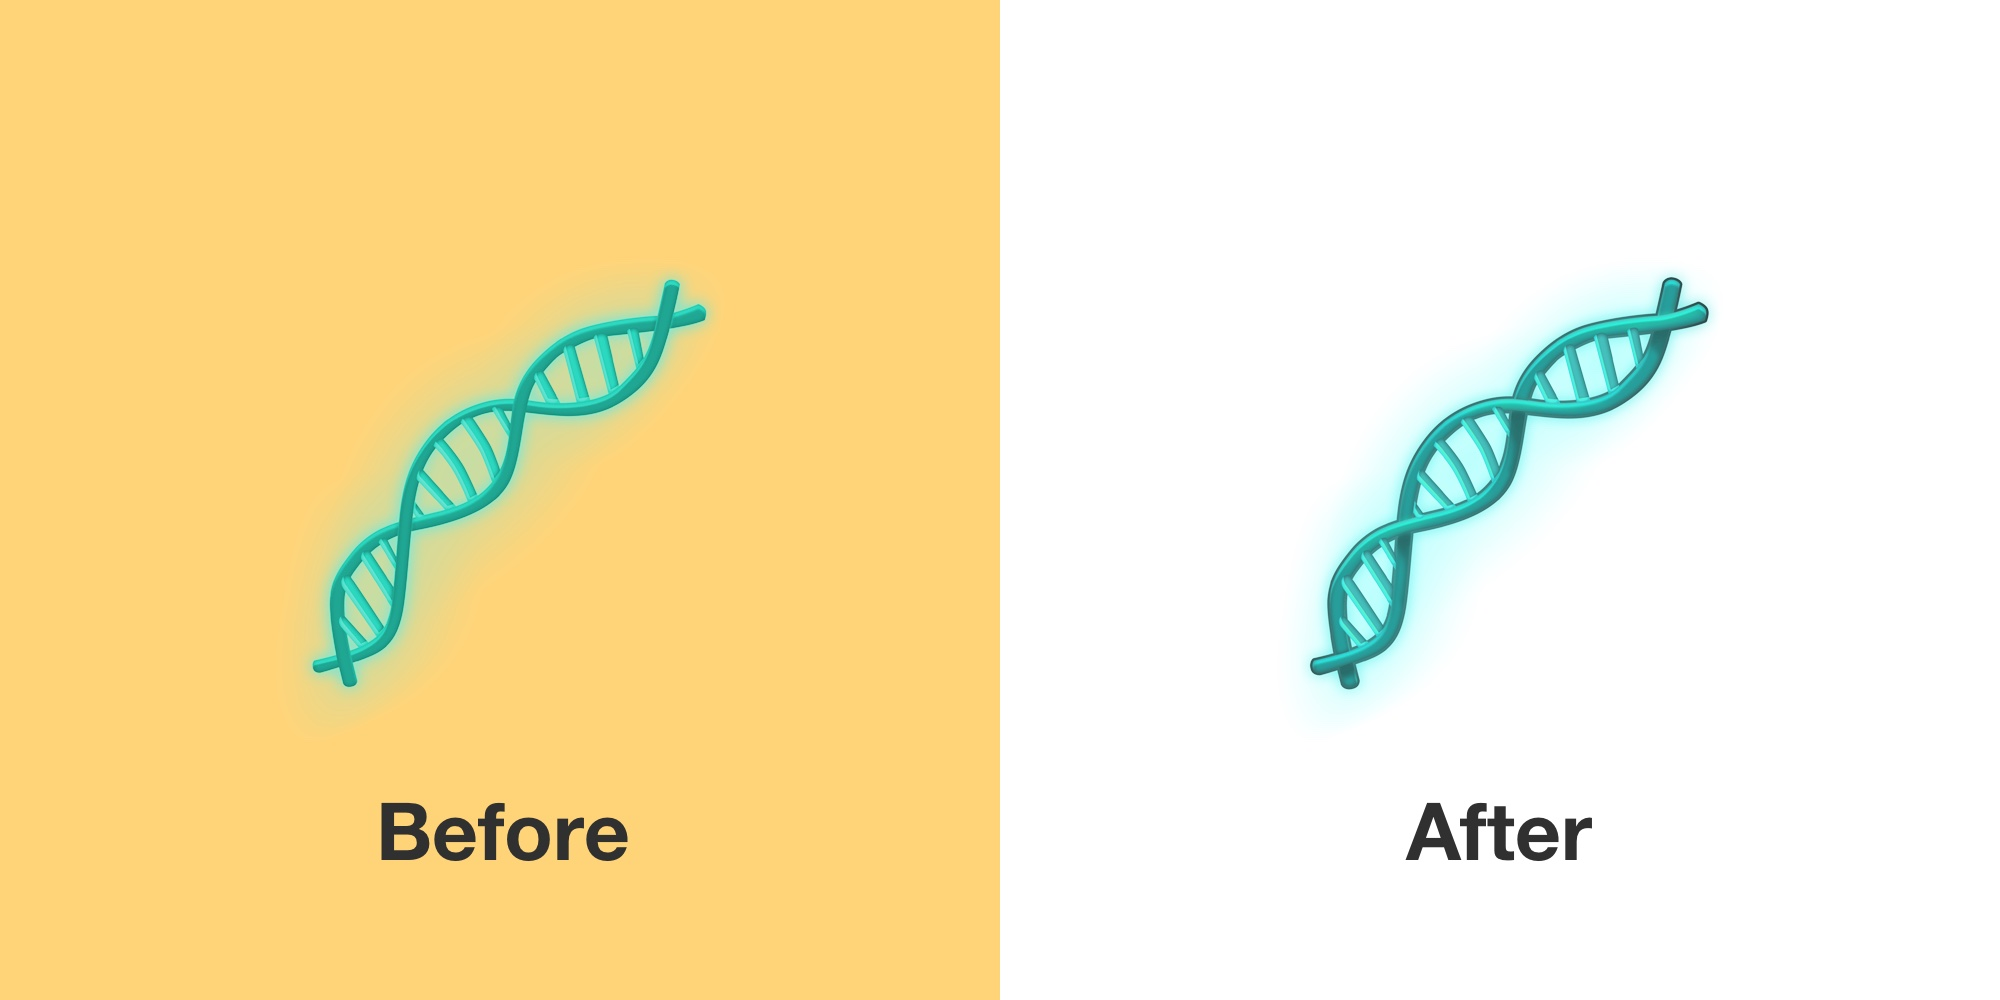 dna-emoji-emojipedia-before-after